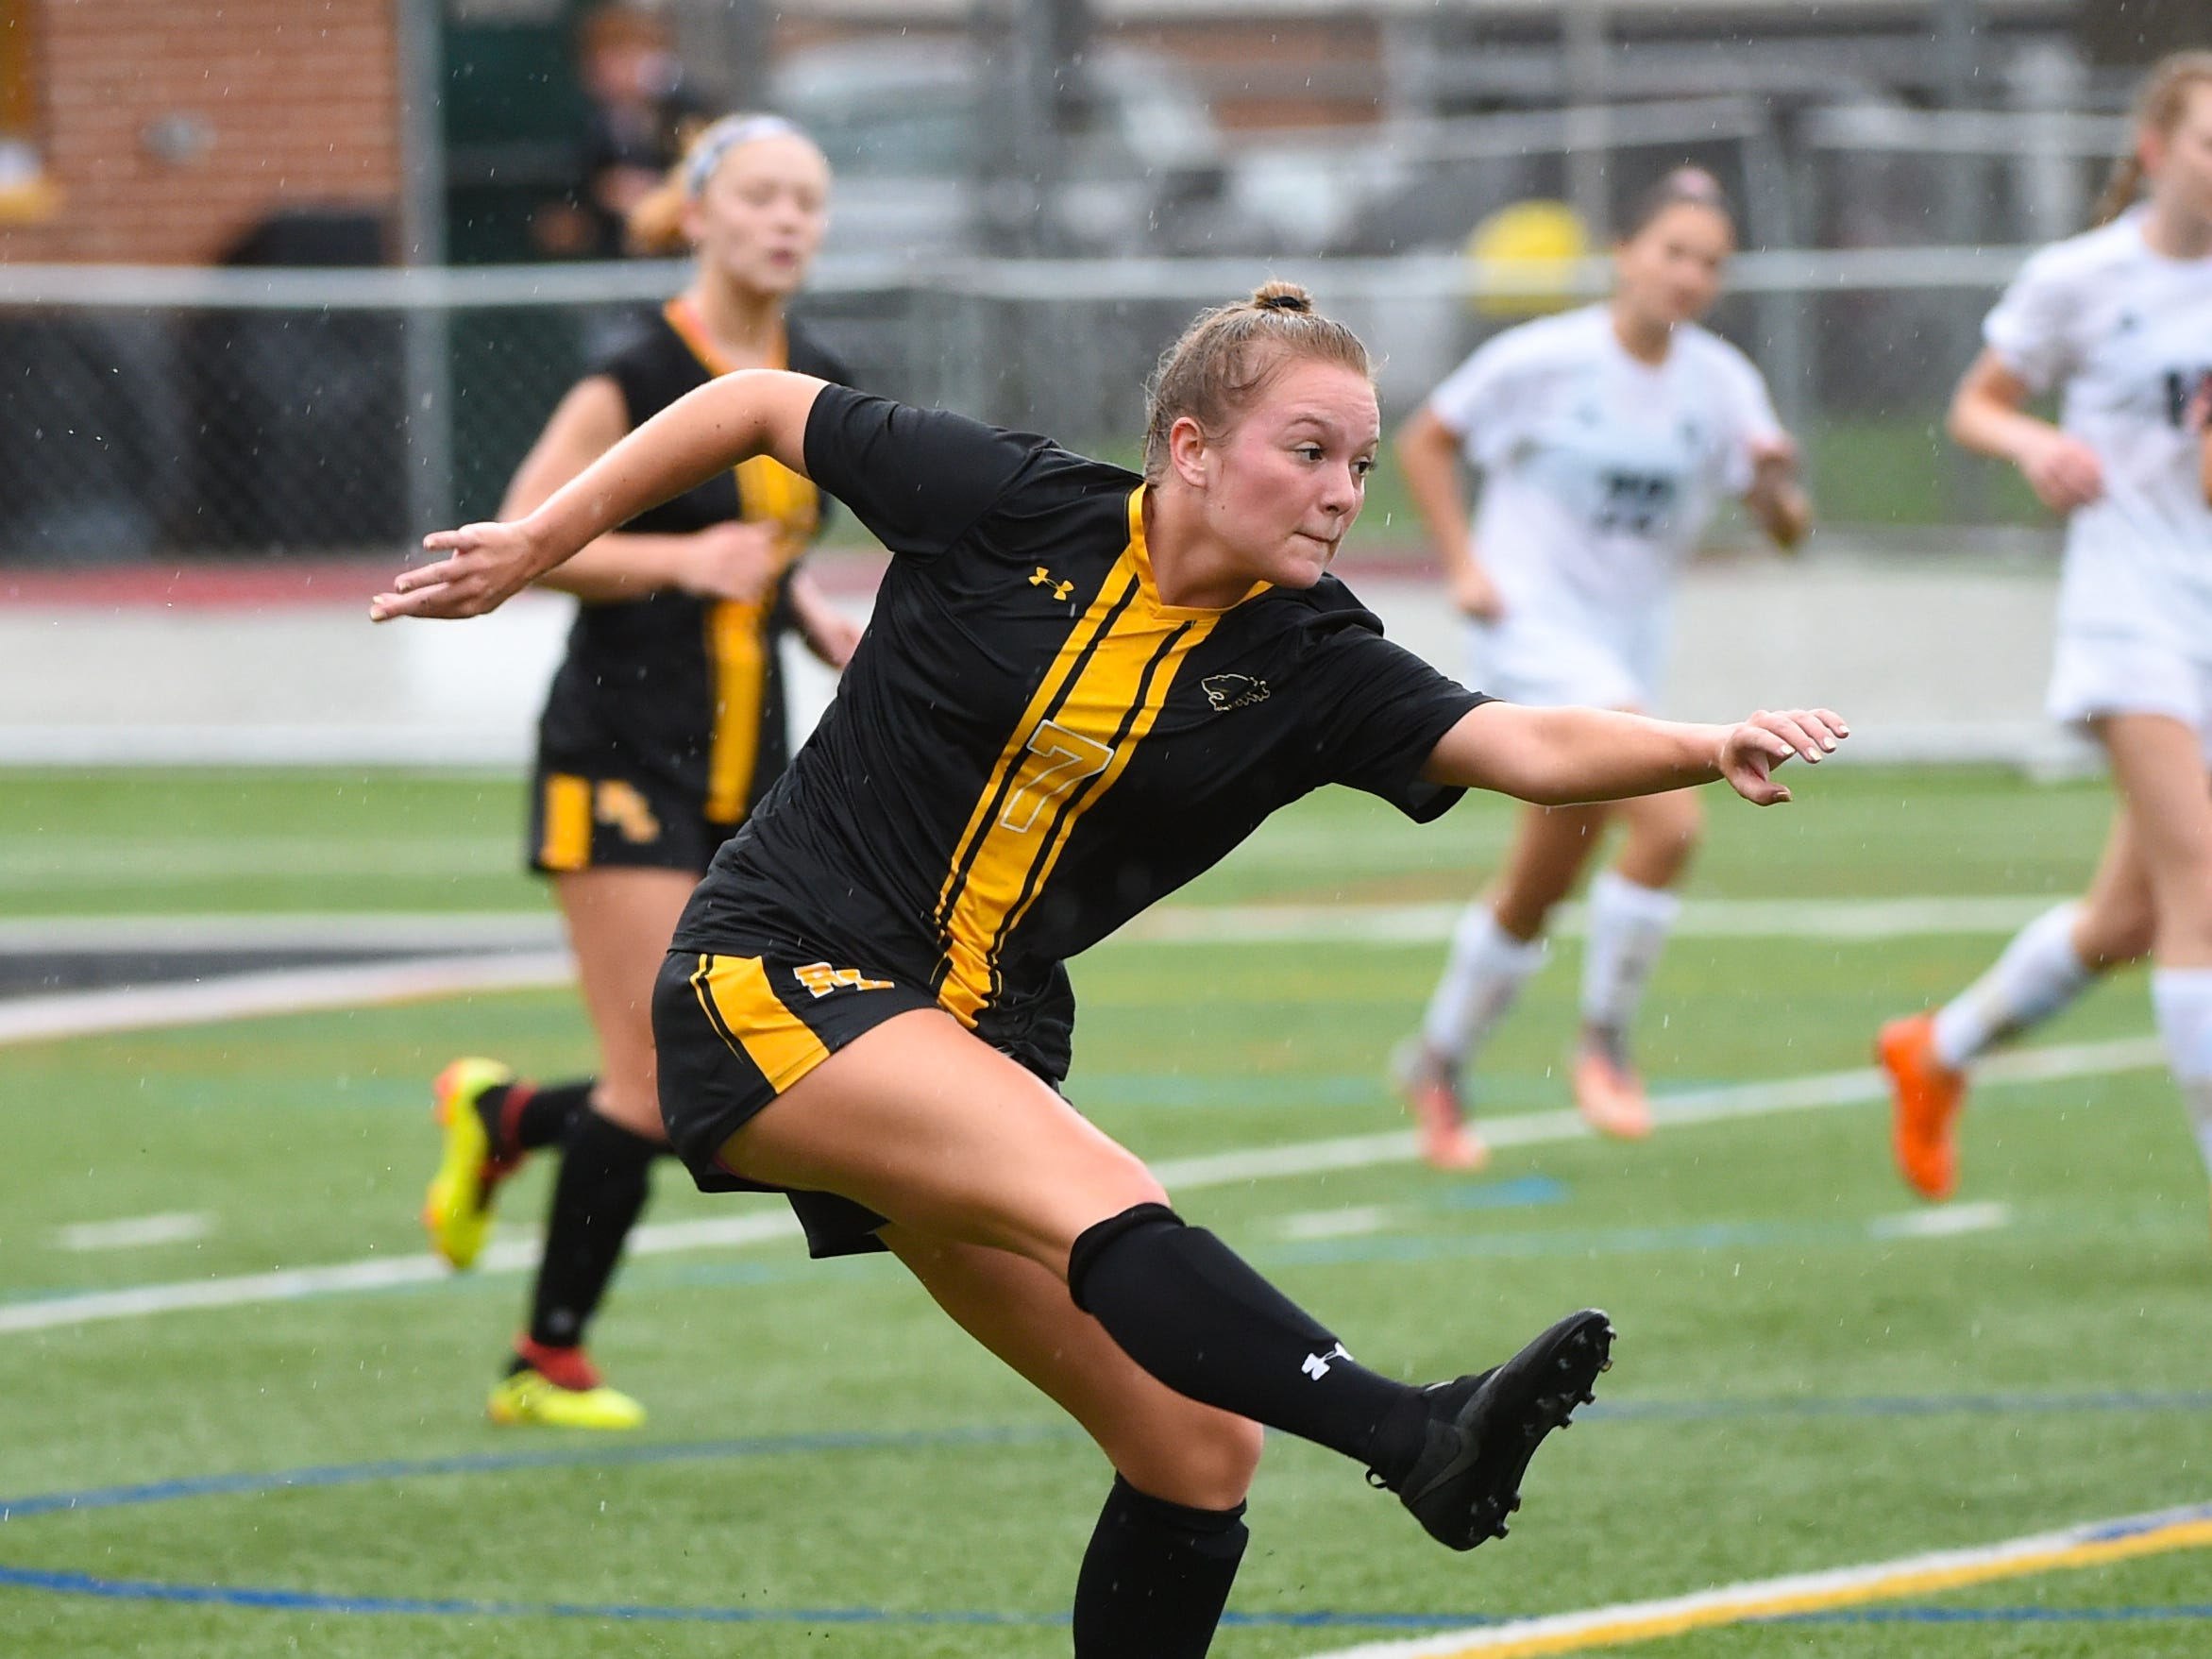 Red Lion's Lexis Kline (7) sends the ball downfield during the girls soccer game between Red Lion and Dallastown, October 11, 2018. The Lady Lions beat the Wildcats 4-0.